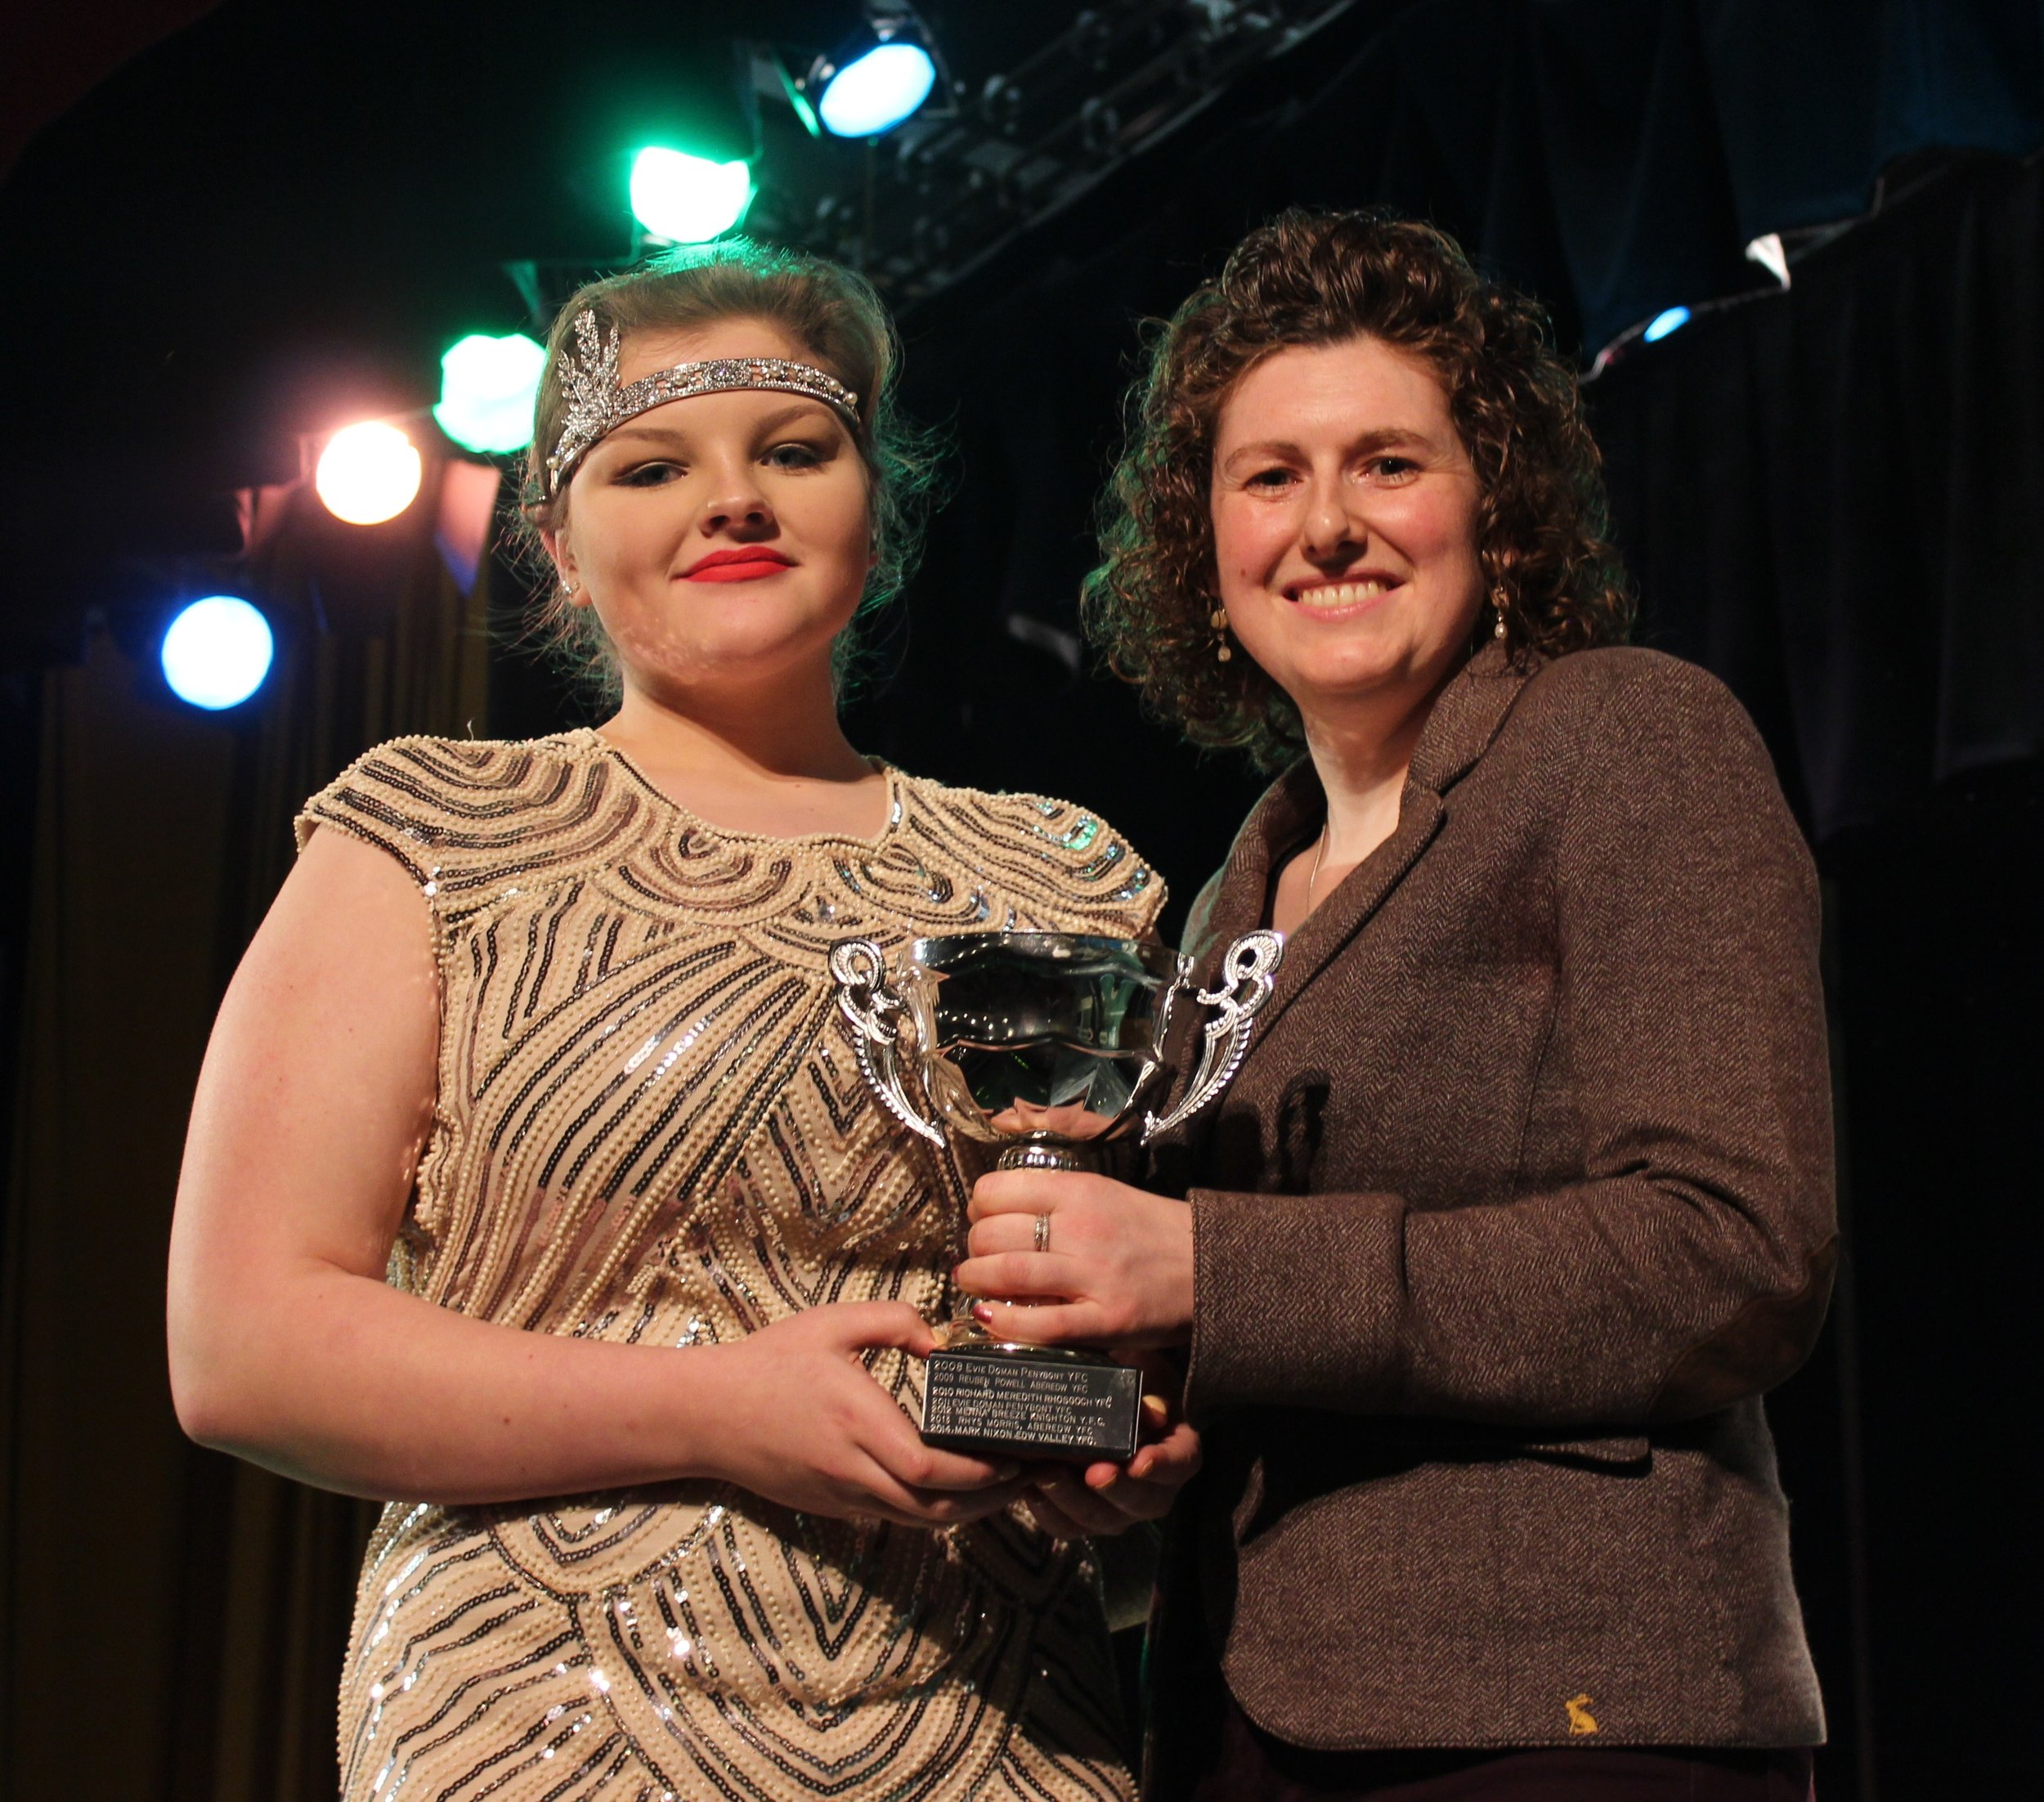 Chloe Lewis, Teme Valley YFC with Barclays representative Avril Hardwick - Clair & Toby Powell Trophy for Best Individual in the One Plus Competition